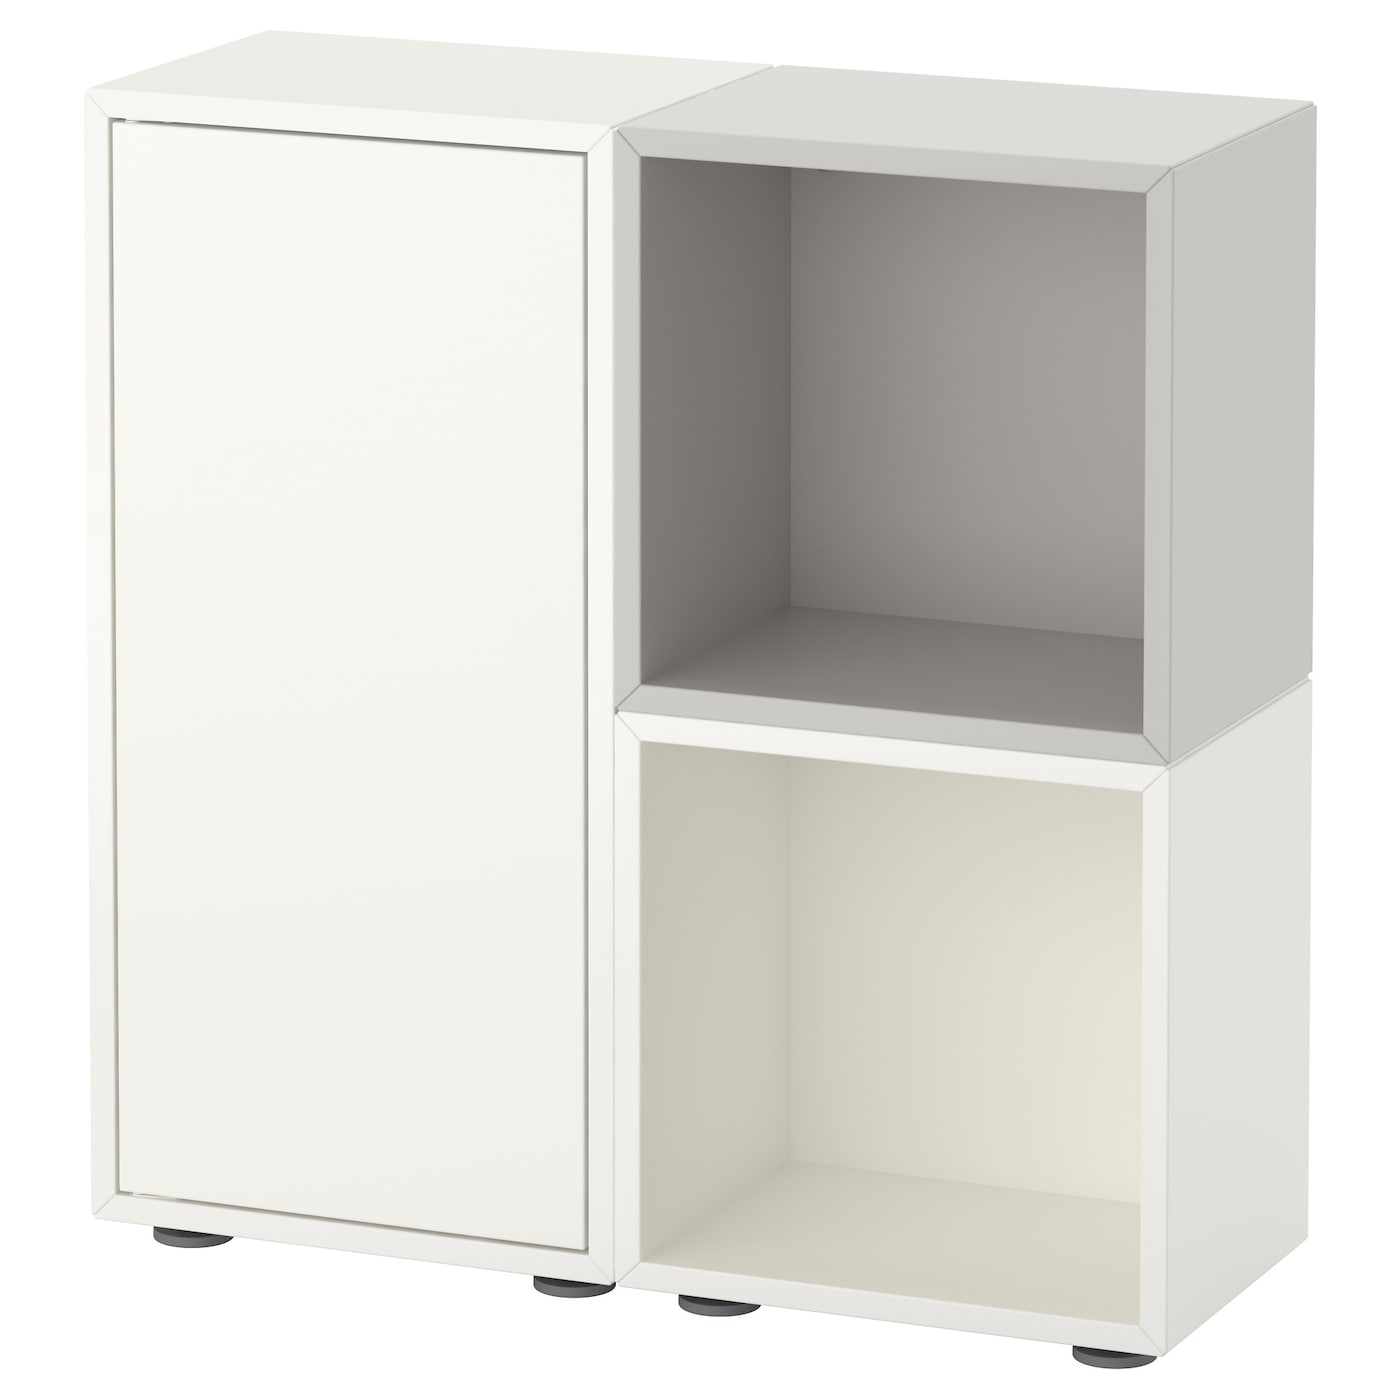 eket cabinet combination with feet white grey 70 x 25 x 72 cm ikea. Black Bedroom Furniture Sets. Home Design Ideas